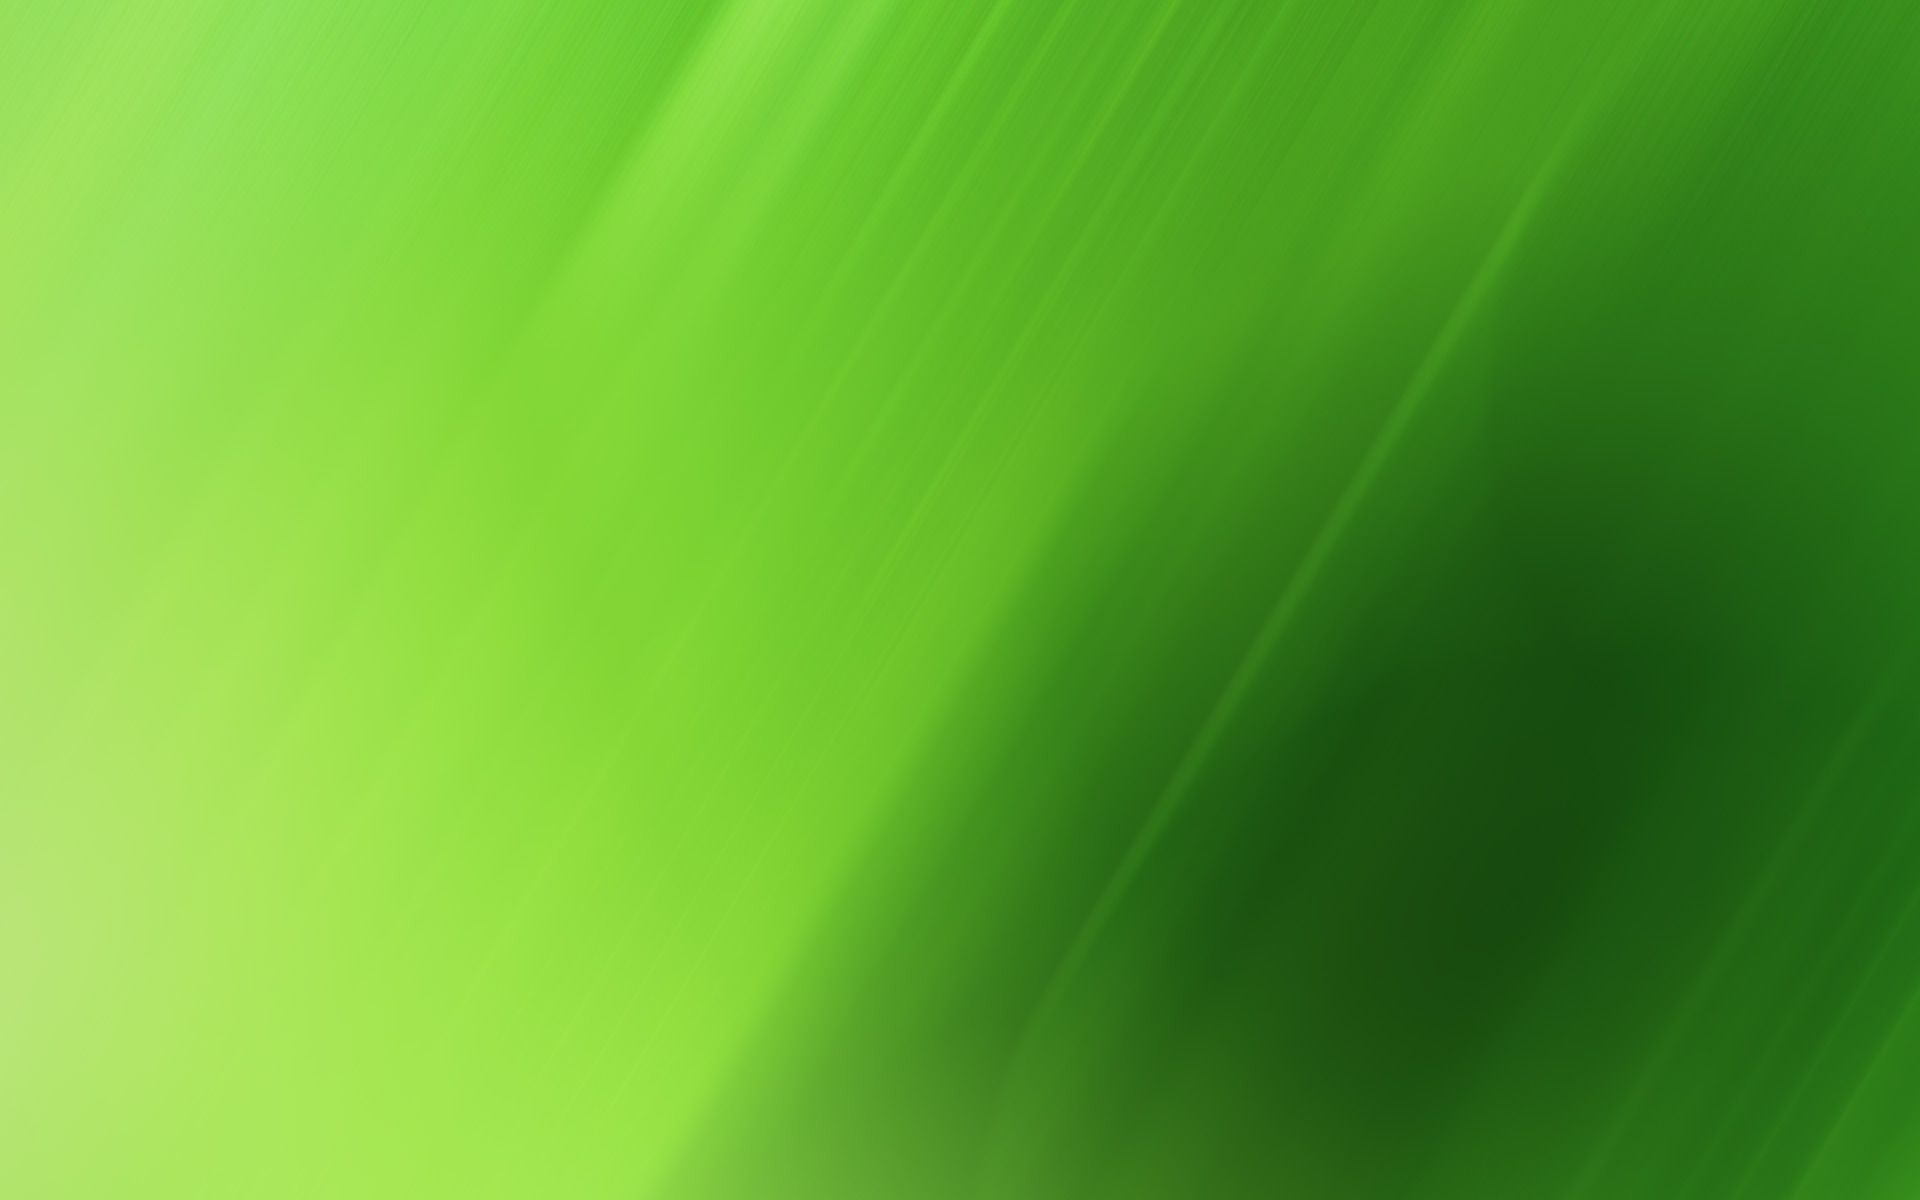 Green Gradient Lines Wallpaper 1504 Centre For Research